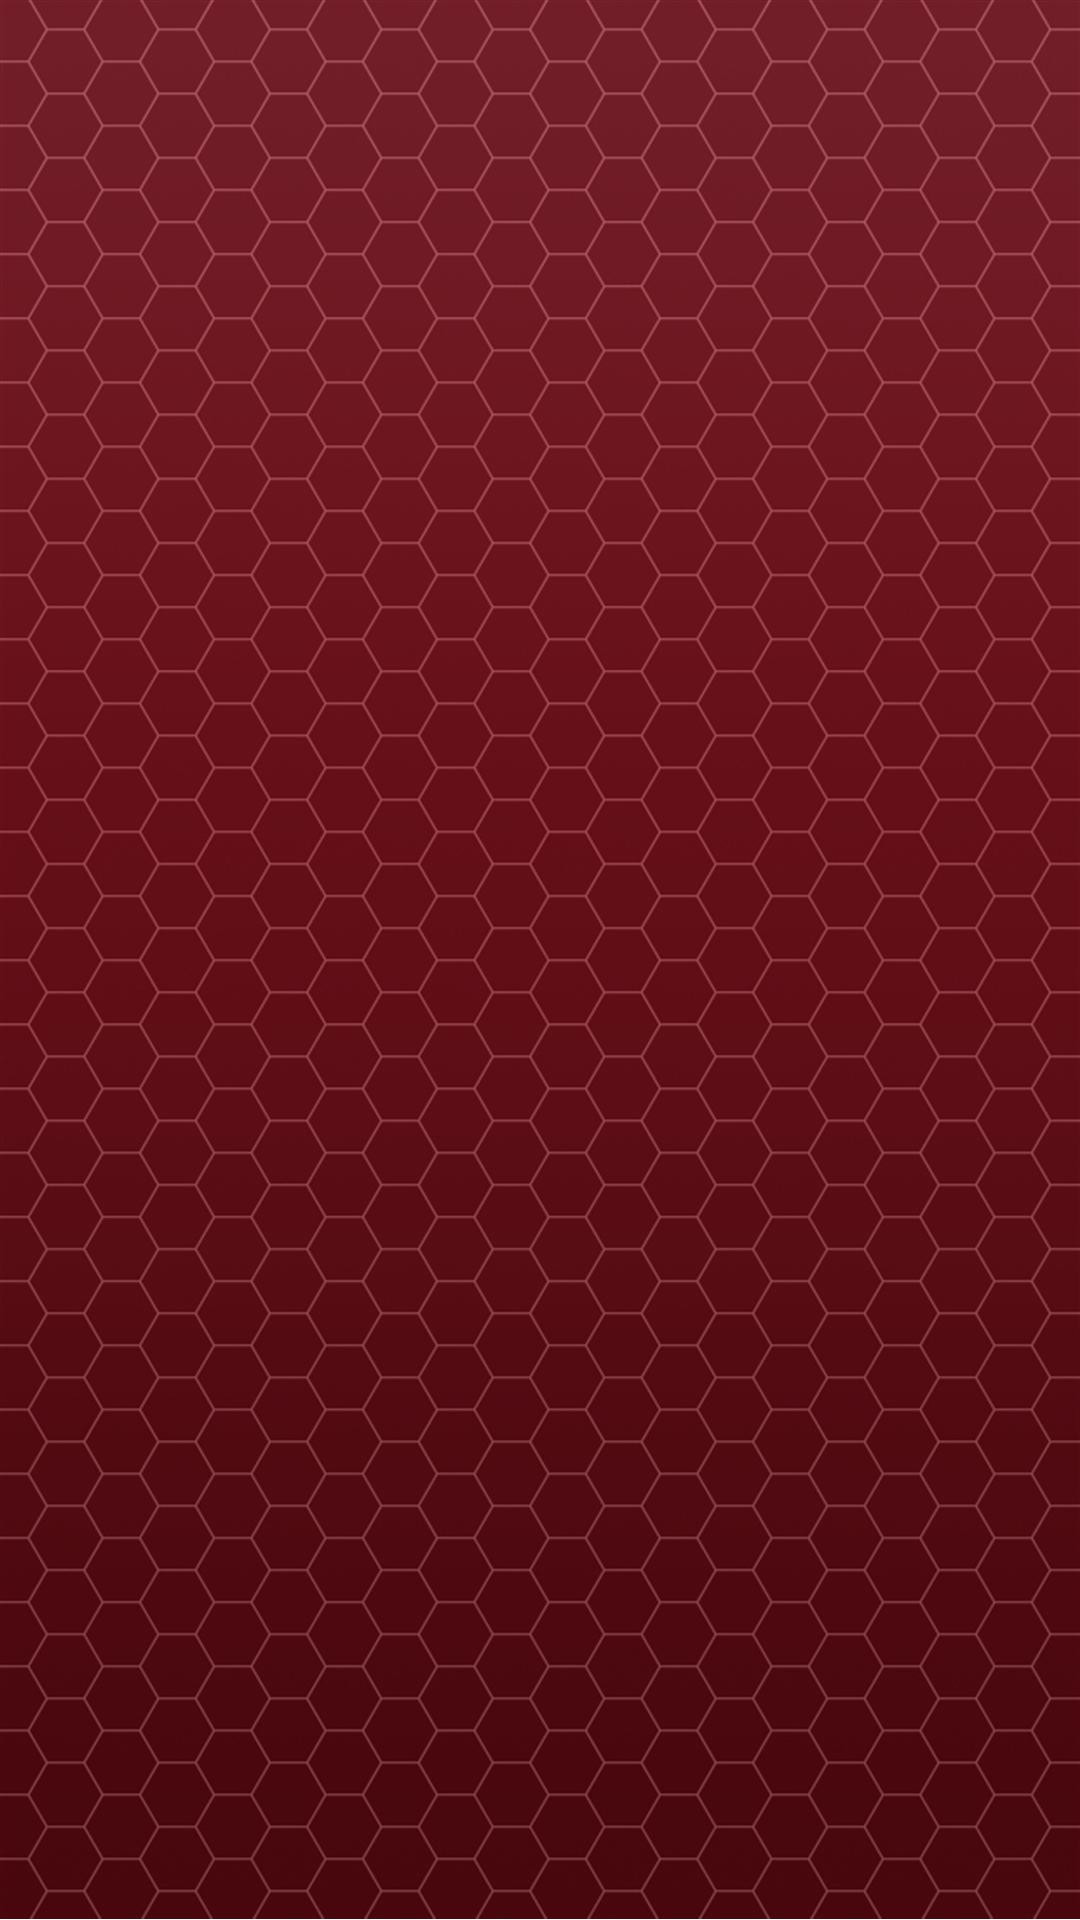 Honeycomb Red Pattern Android Wallpaper